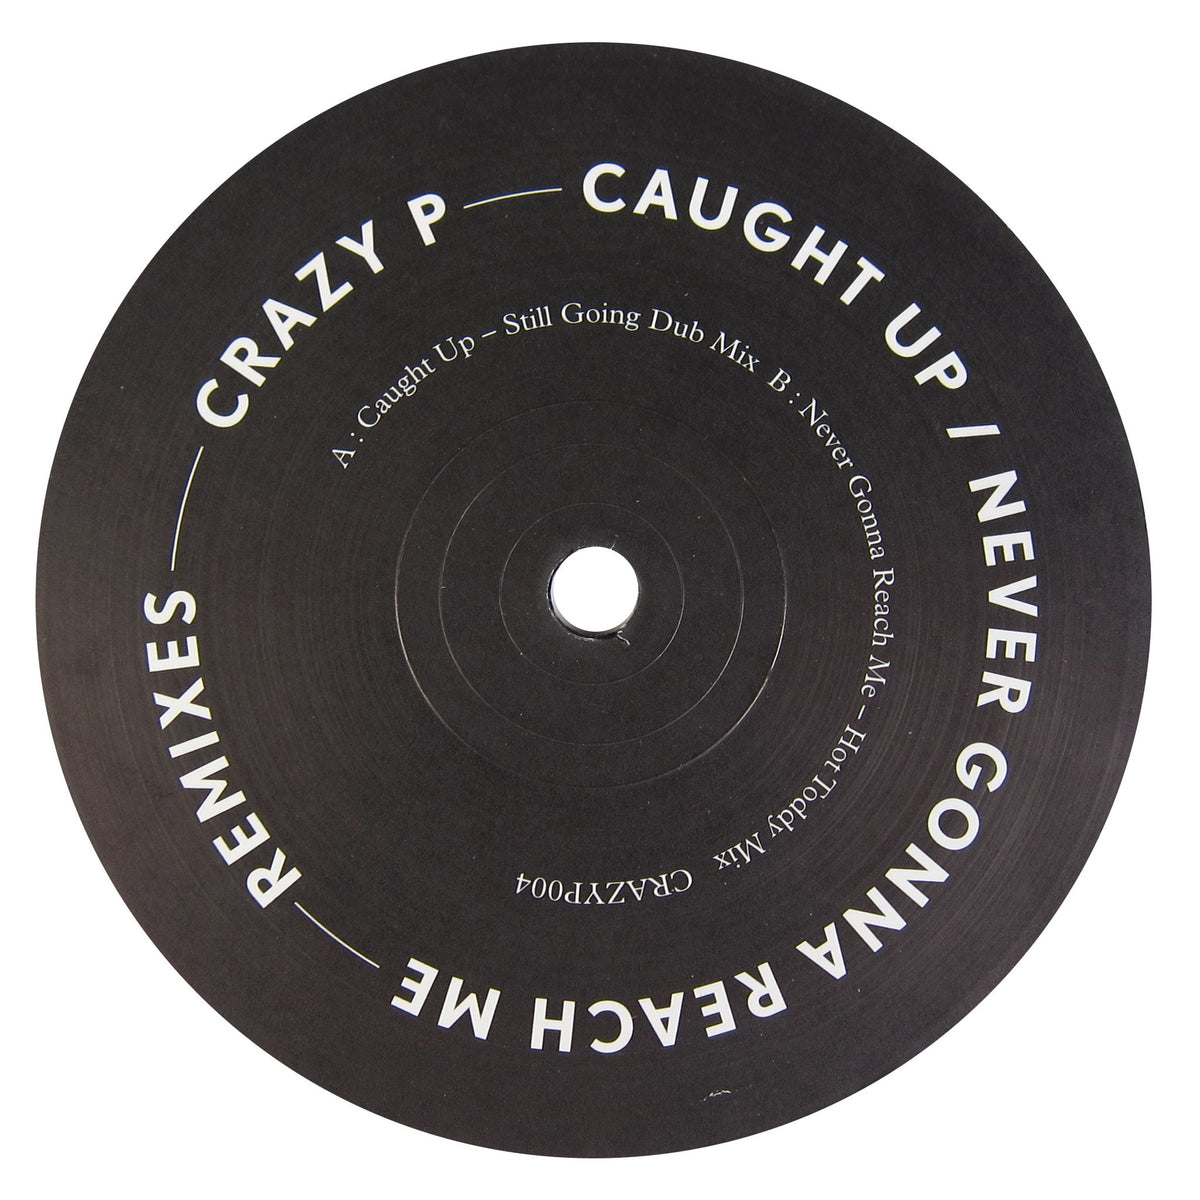 Crazy P: Caught Up Remix (Still Going, Hot Toddy) 12""